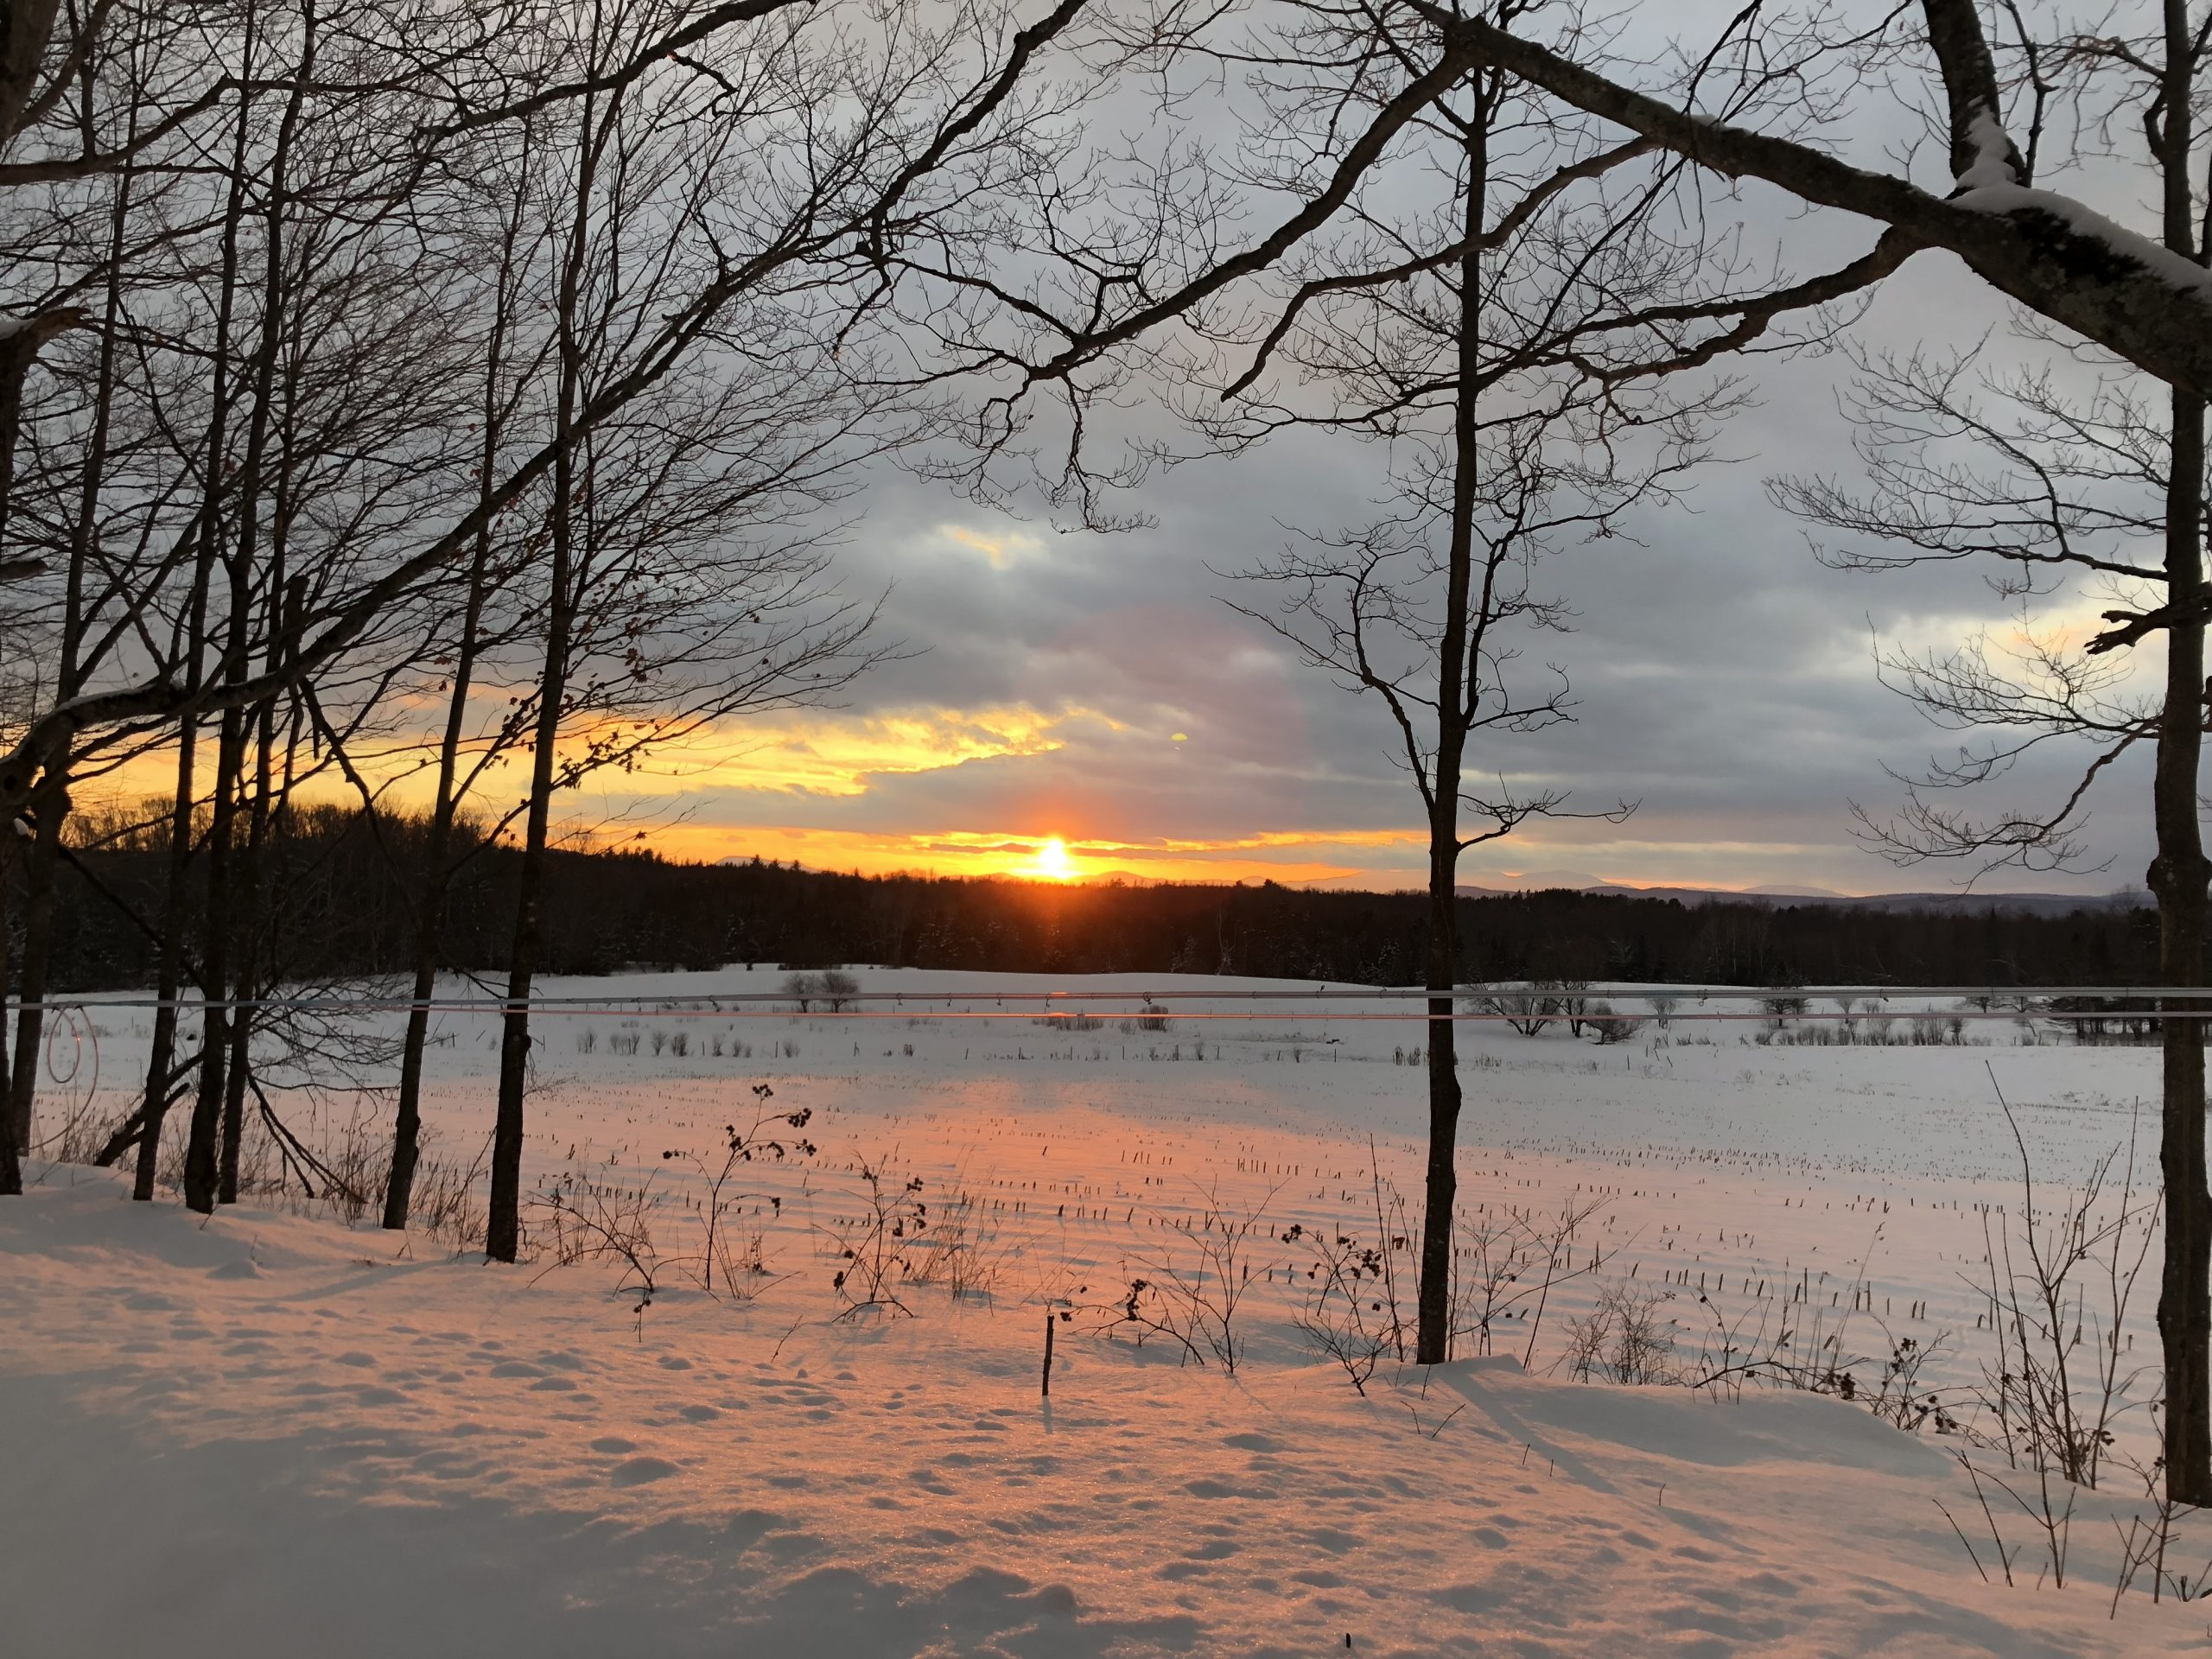 A beautiful Sunset in the Northeast Kingdom of Vermont